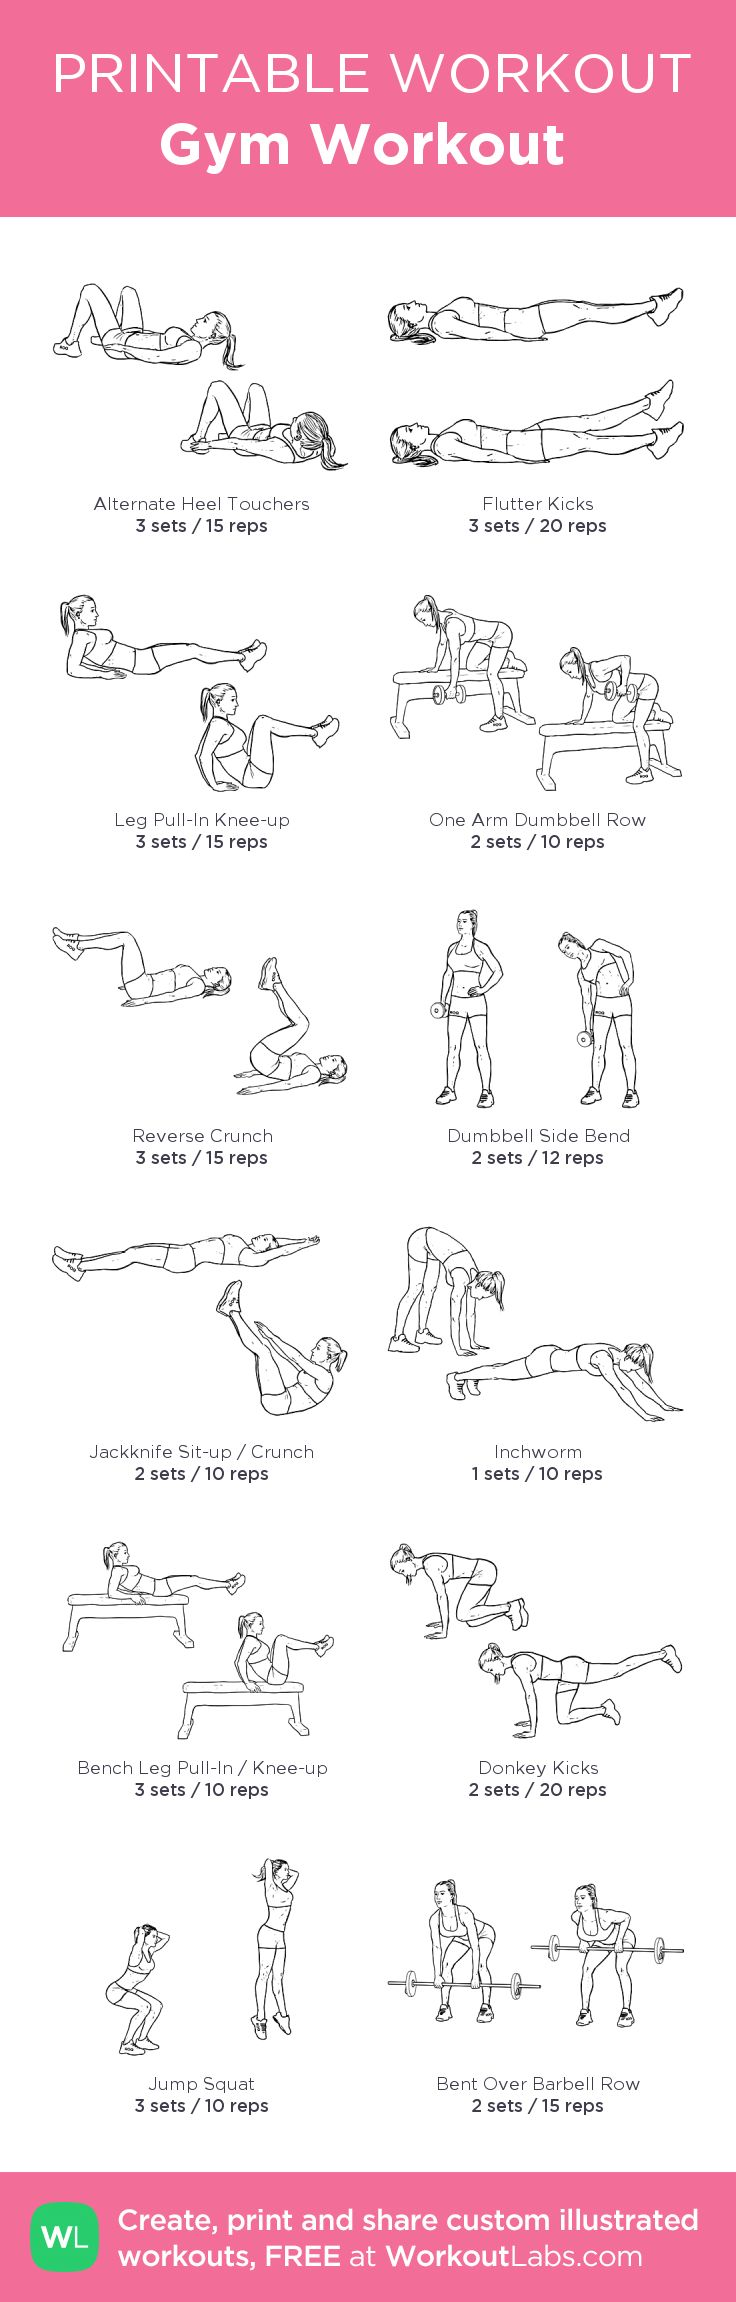 graphic about Printable Arm Workouts called club health laval Archives - Webpage 289 of 501 - Flashmode